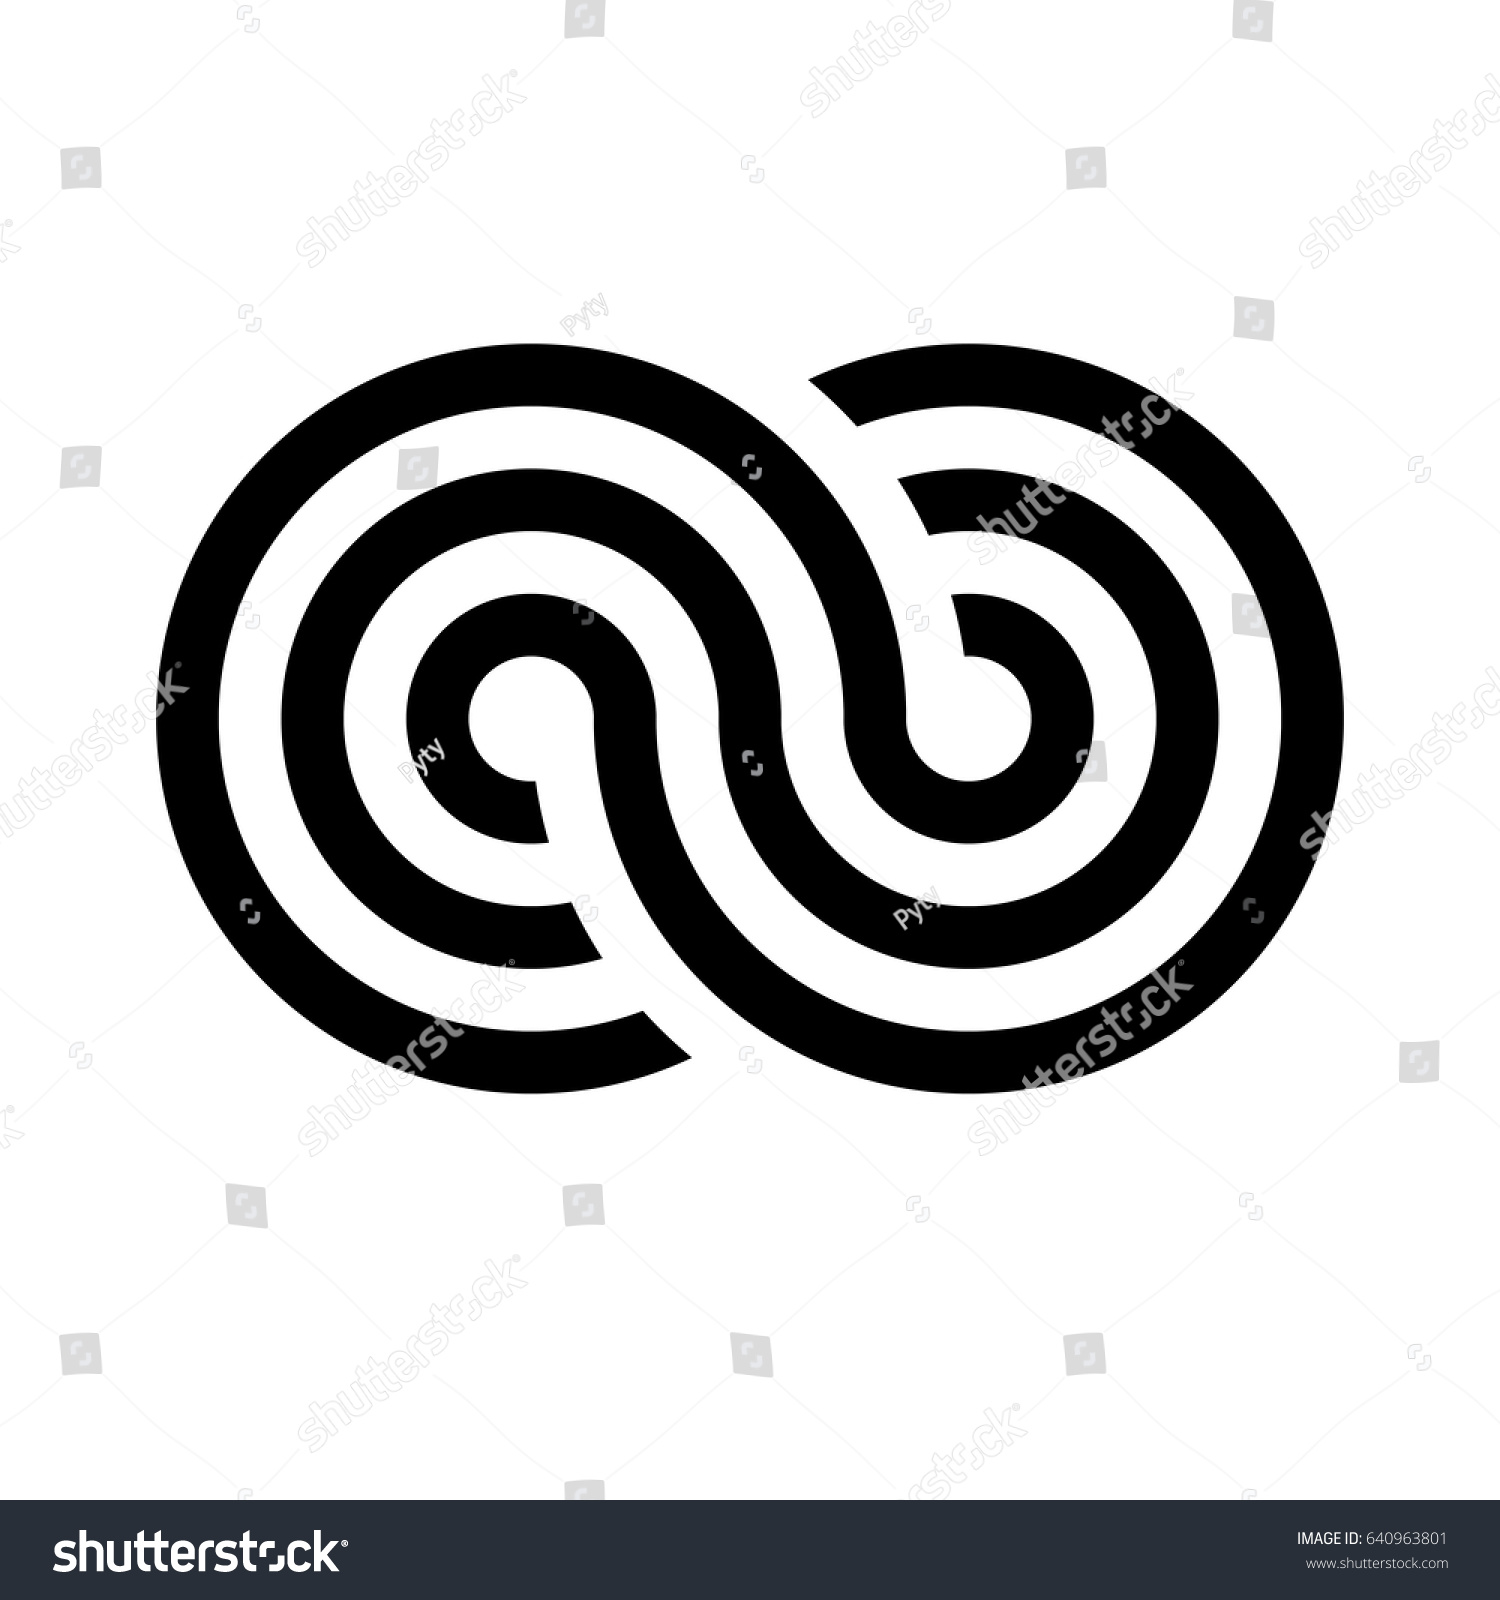 Infinity symbol icon representing concept infinite stock vector infinity symbol icon representing the concept of infinite limitless and endless things simple biocorpaavc Gallery